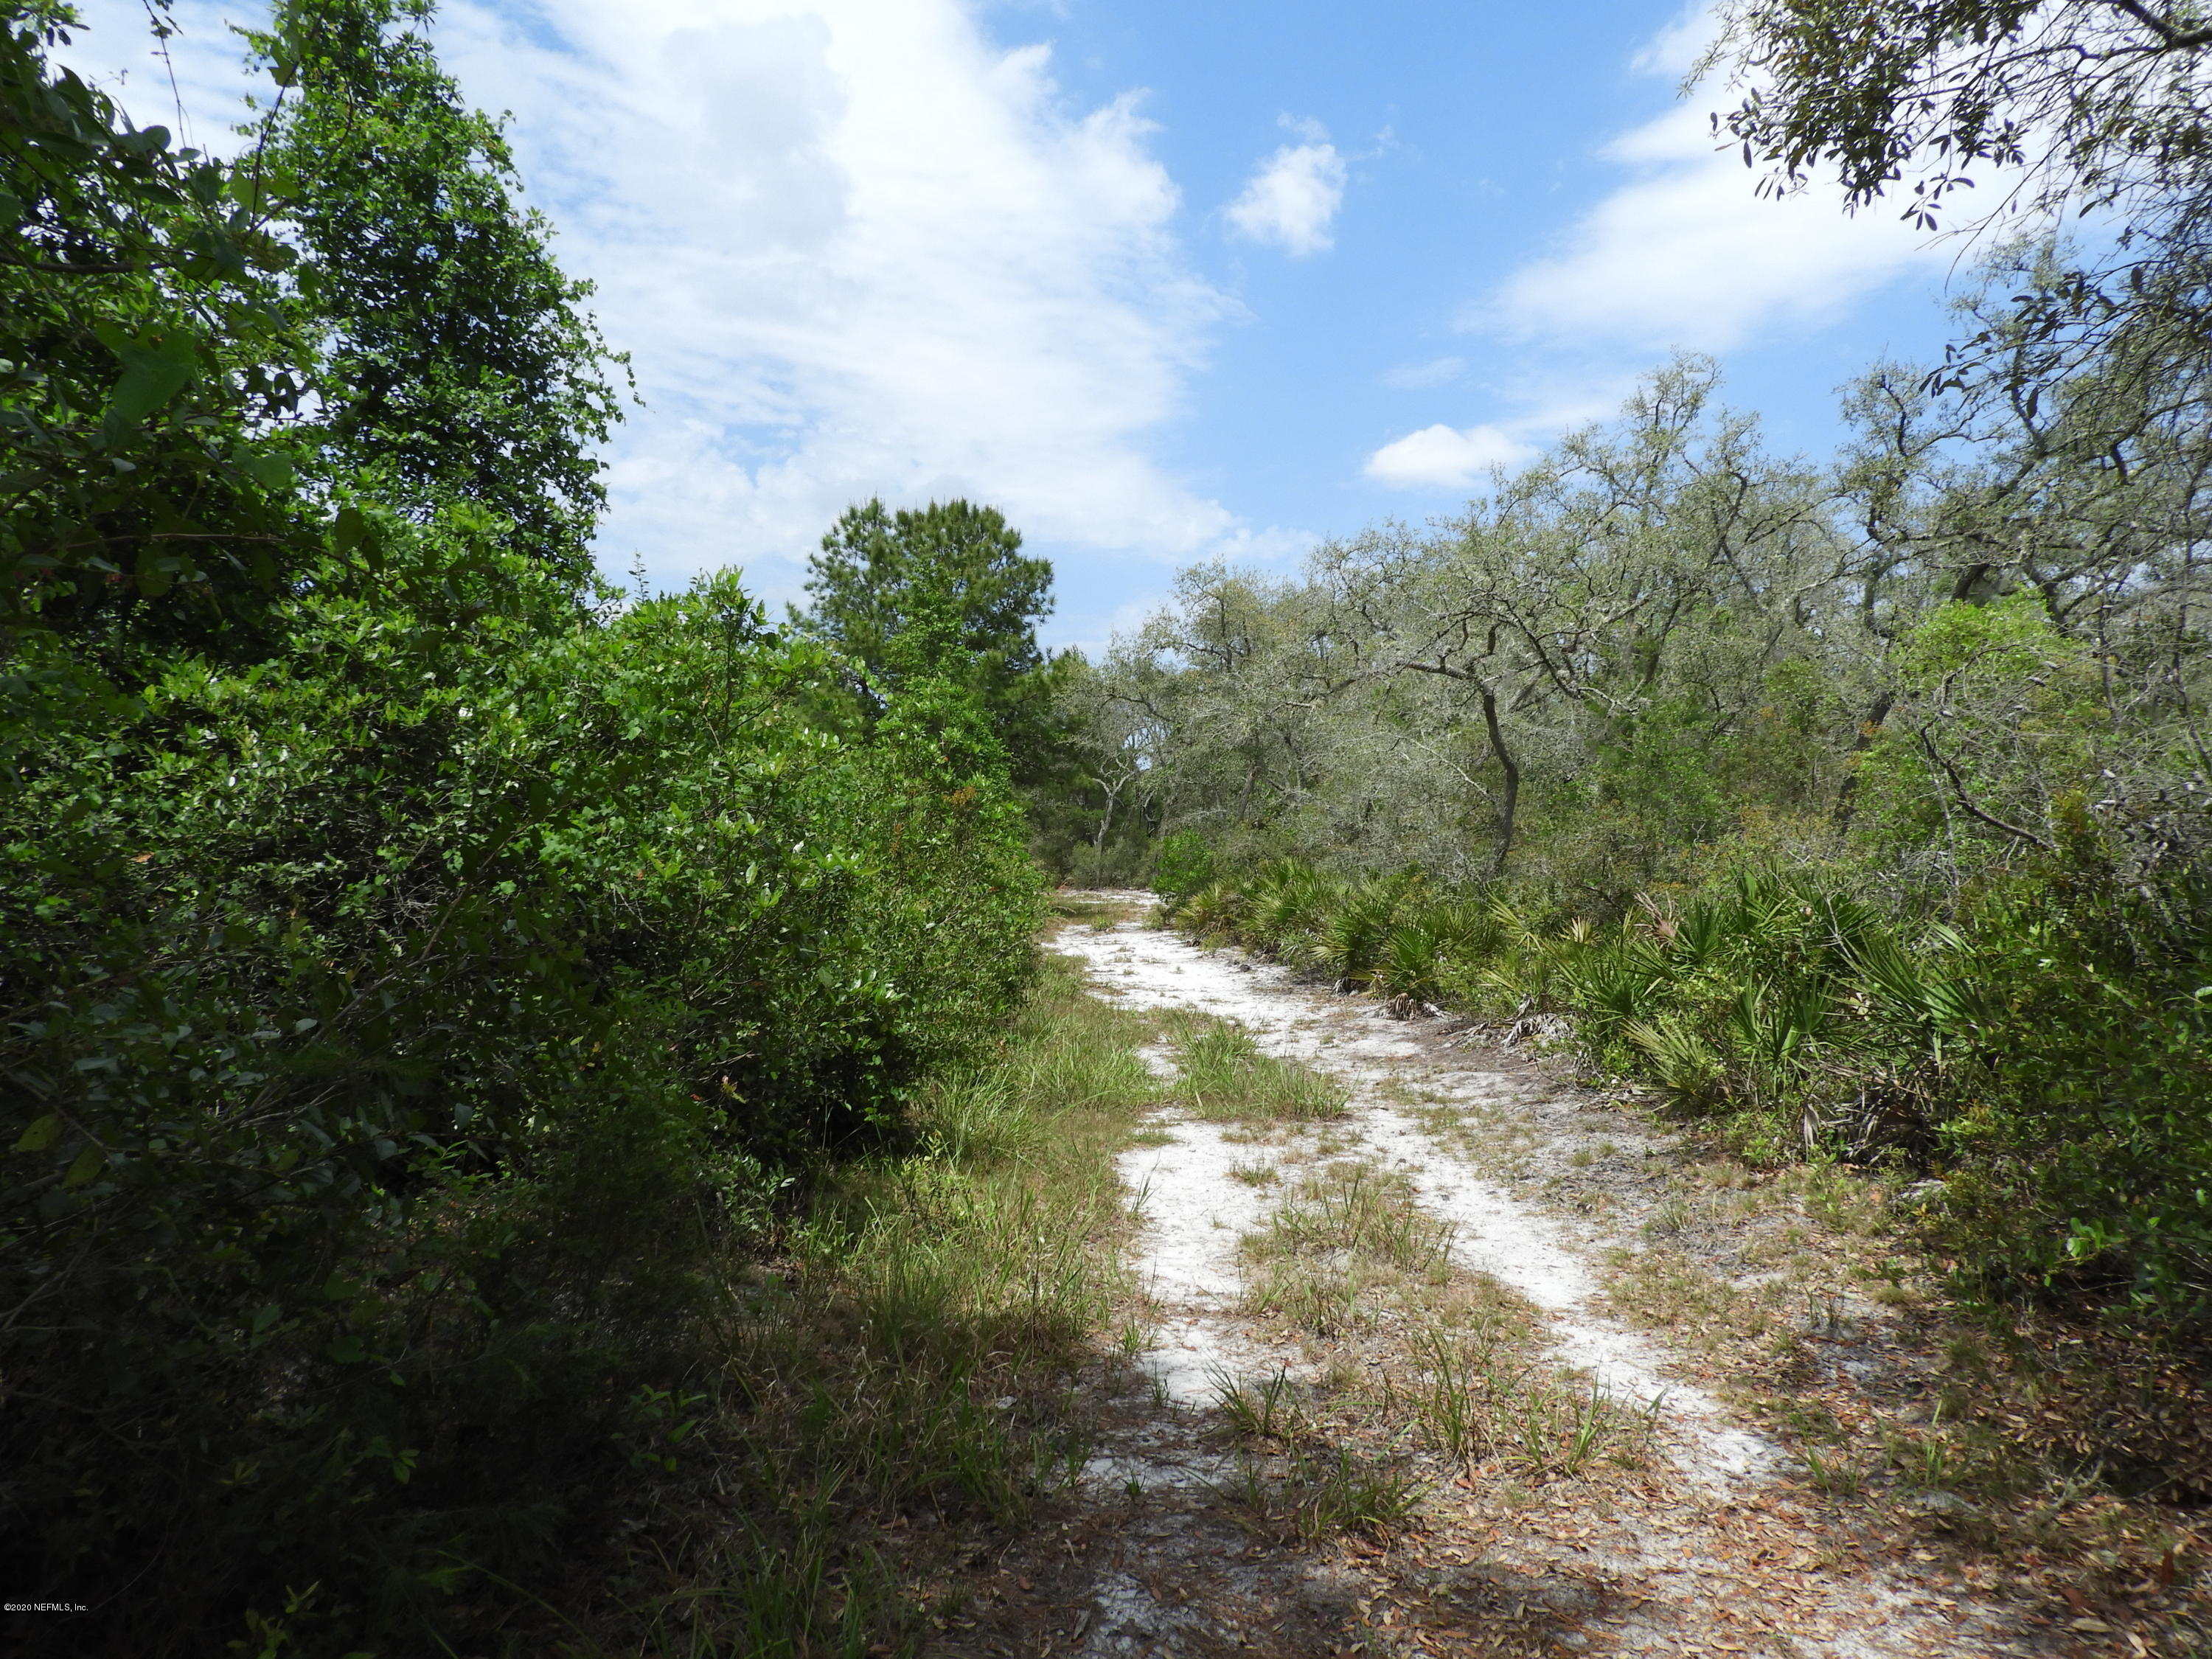 960 COUNTY ROAD 20A, HAWTHORNE, FLORIDA 32640, ,Vacant land,For sale,COUNTY ROAD 20A,1050940